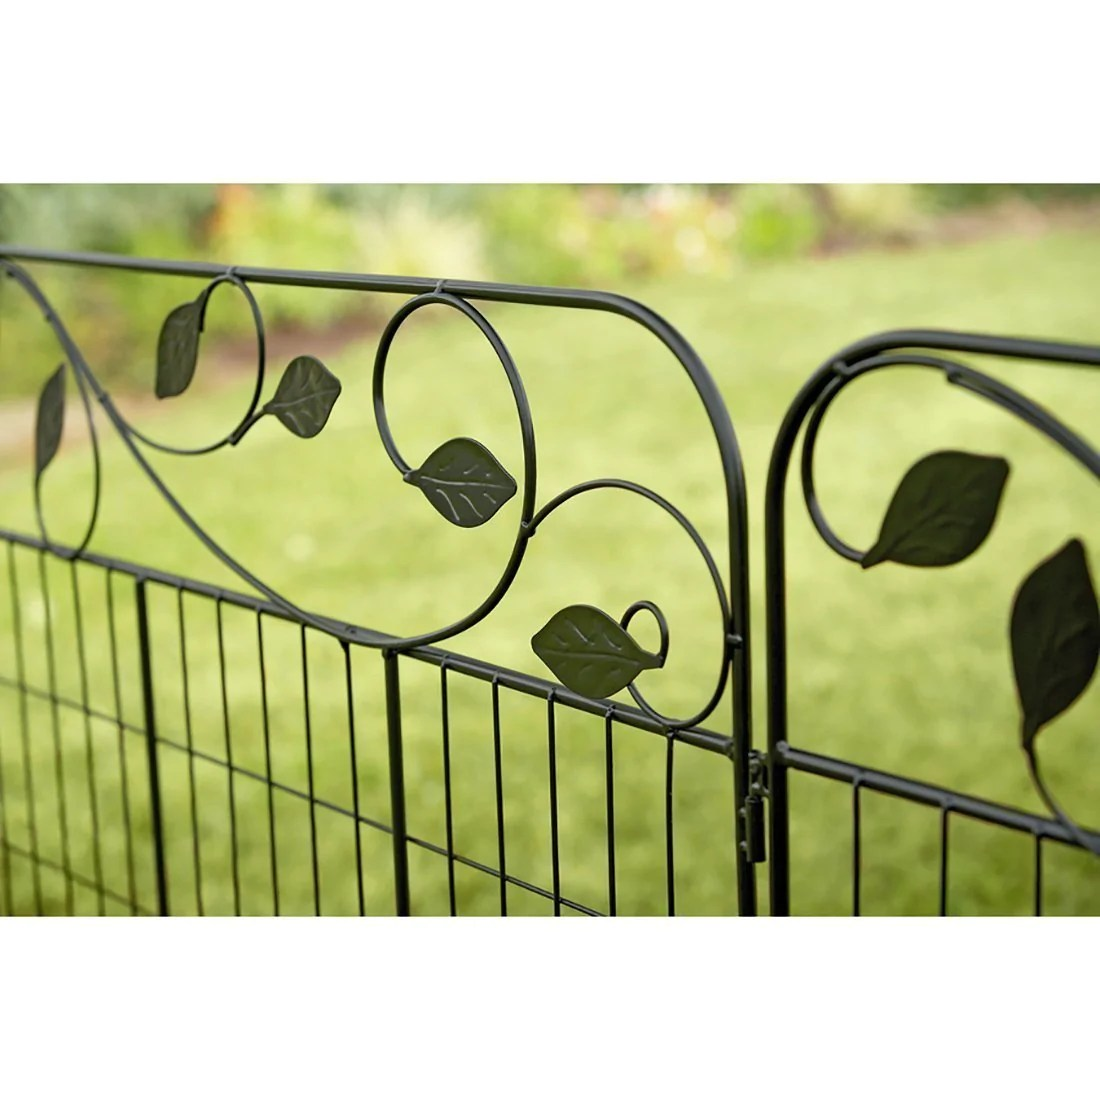 Wire Fencing Garden Fence Gate 44in X 6ft Outdoor Coated Metal Fence Rustproof By Amagabeli